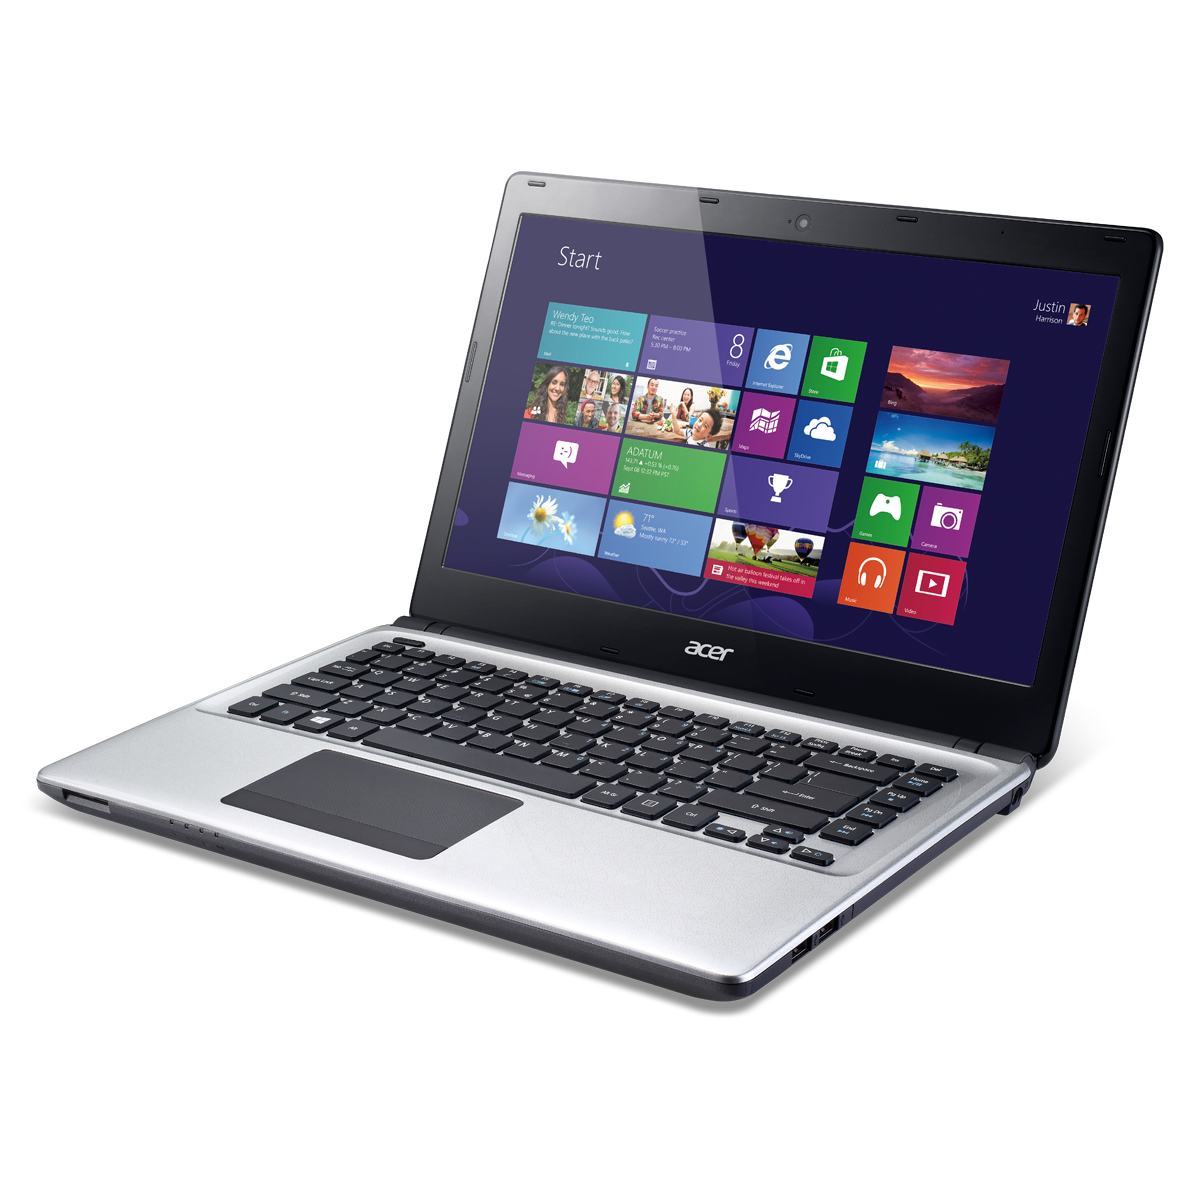 Acer Aspire E1-472G Driver Download for windows 8 and windows 8.1 64 bit